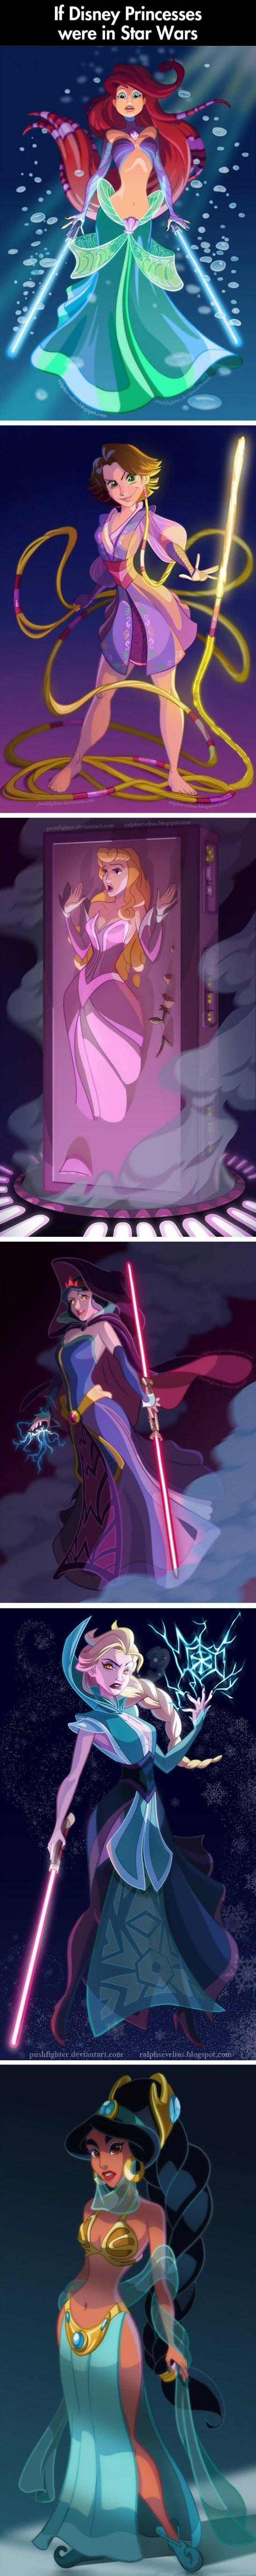 If Disney Princesses were in Star Wars